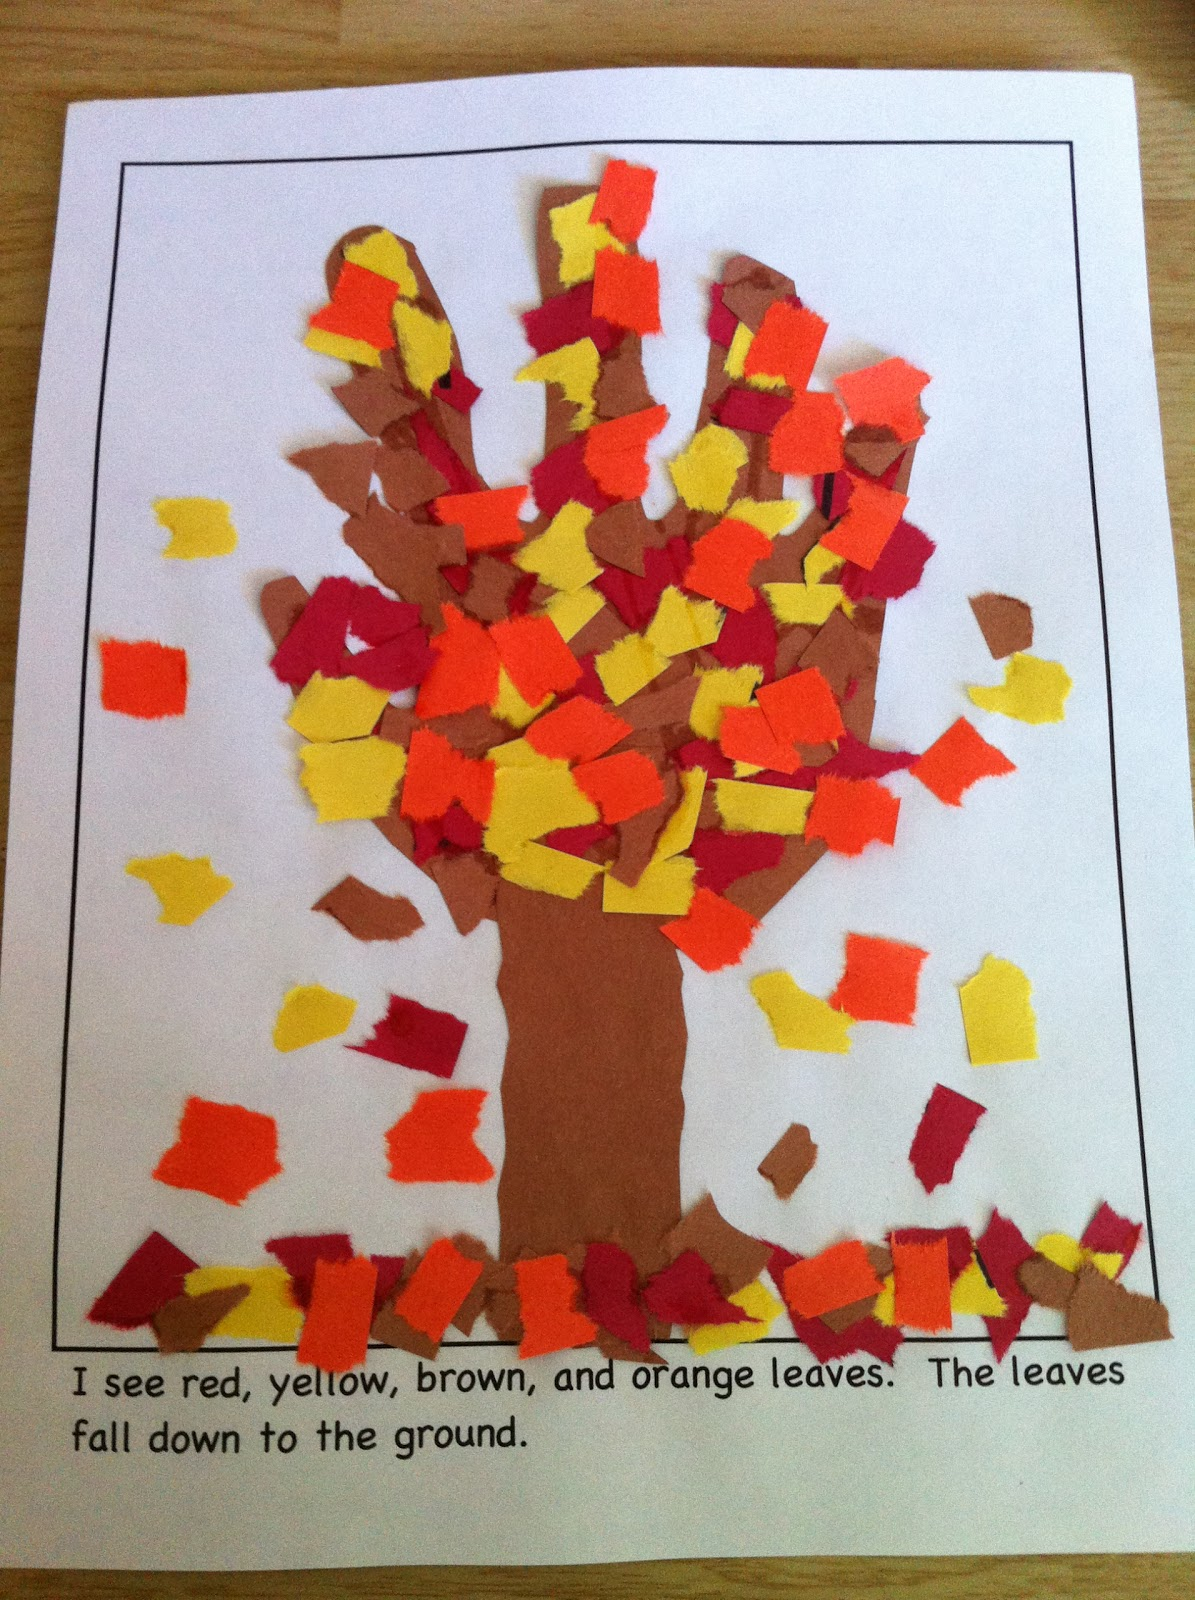 Kindergarten Kids At Play: My Fall Season Activities ...